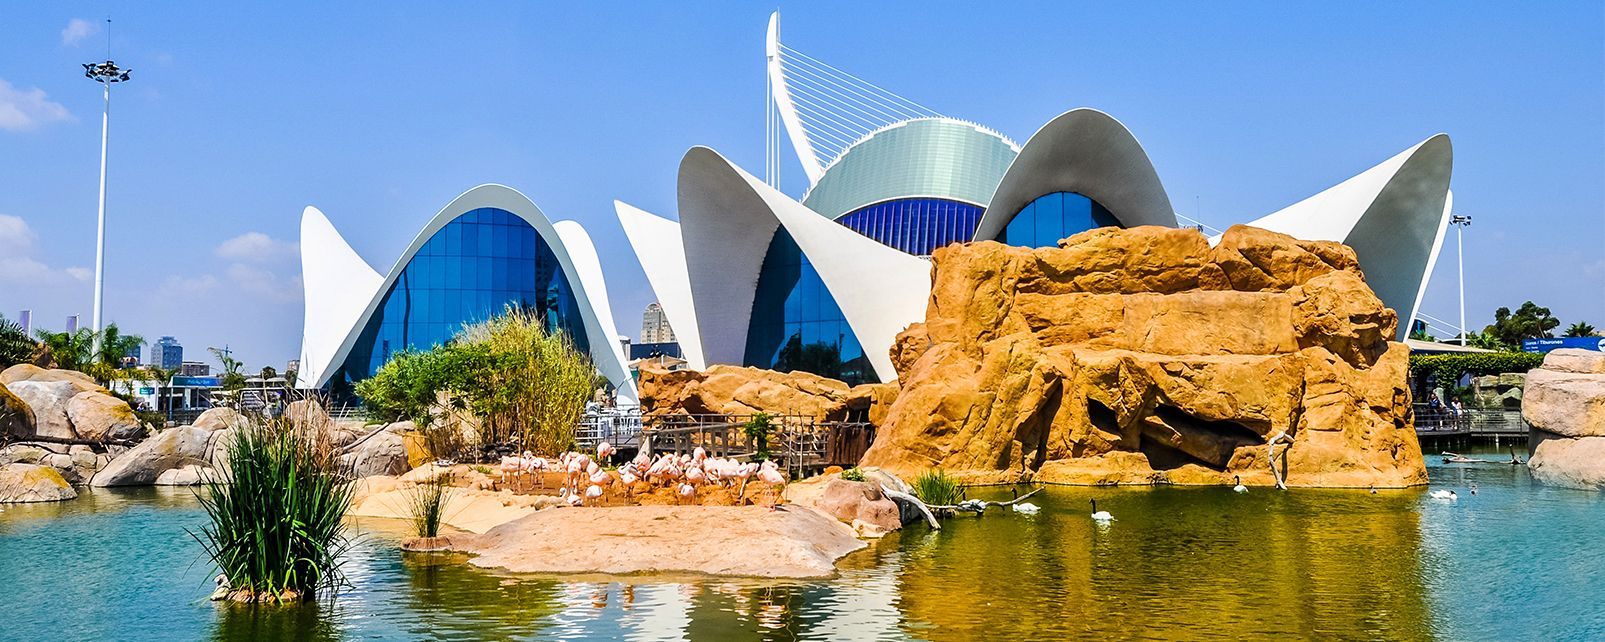 The aquarium, L'Océanographic, The fauna and flora, Community of Valencia